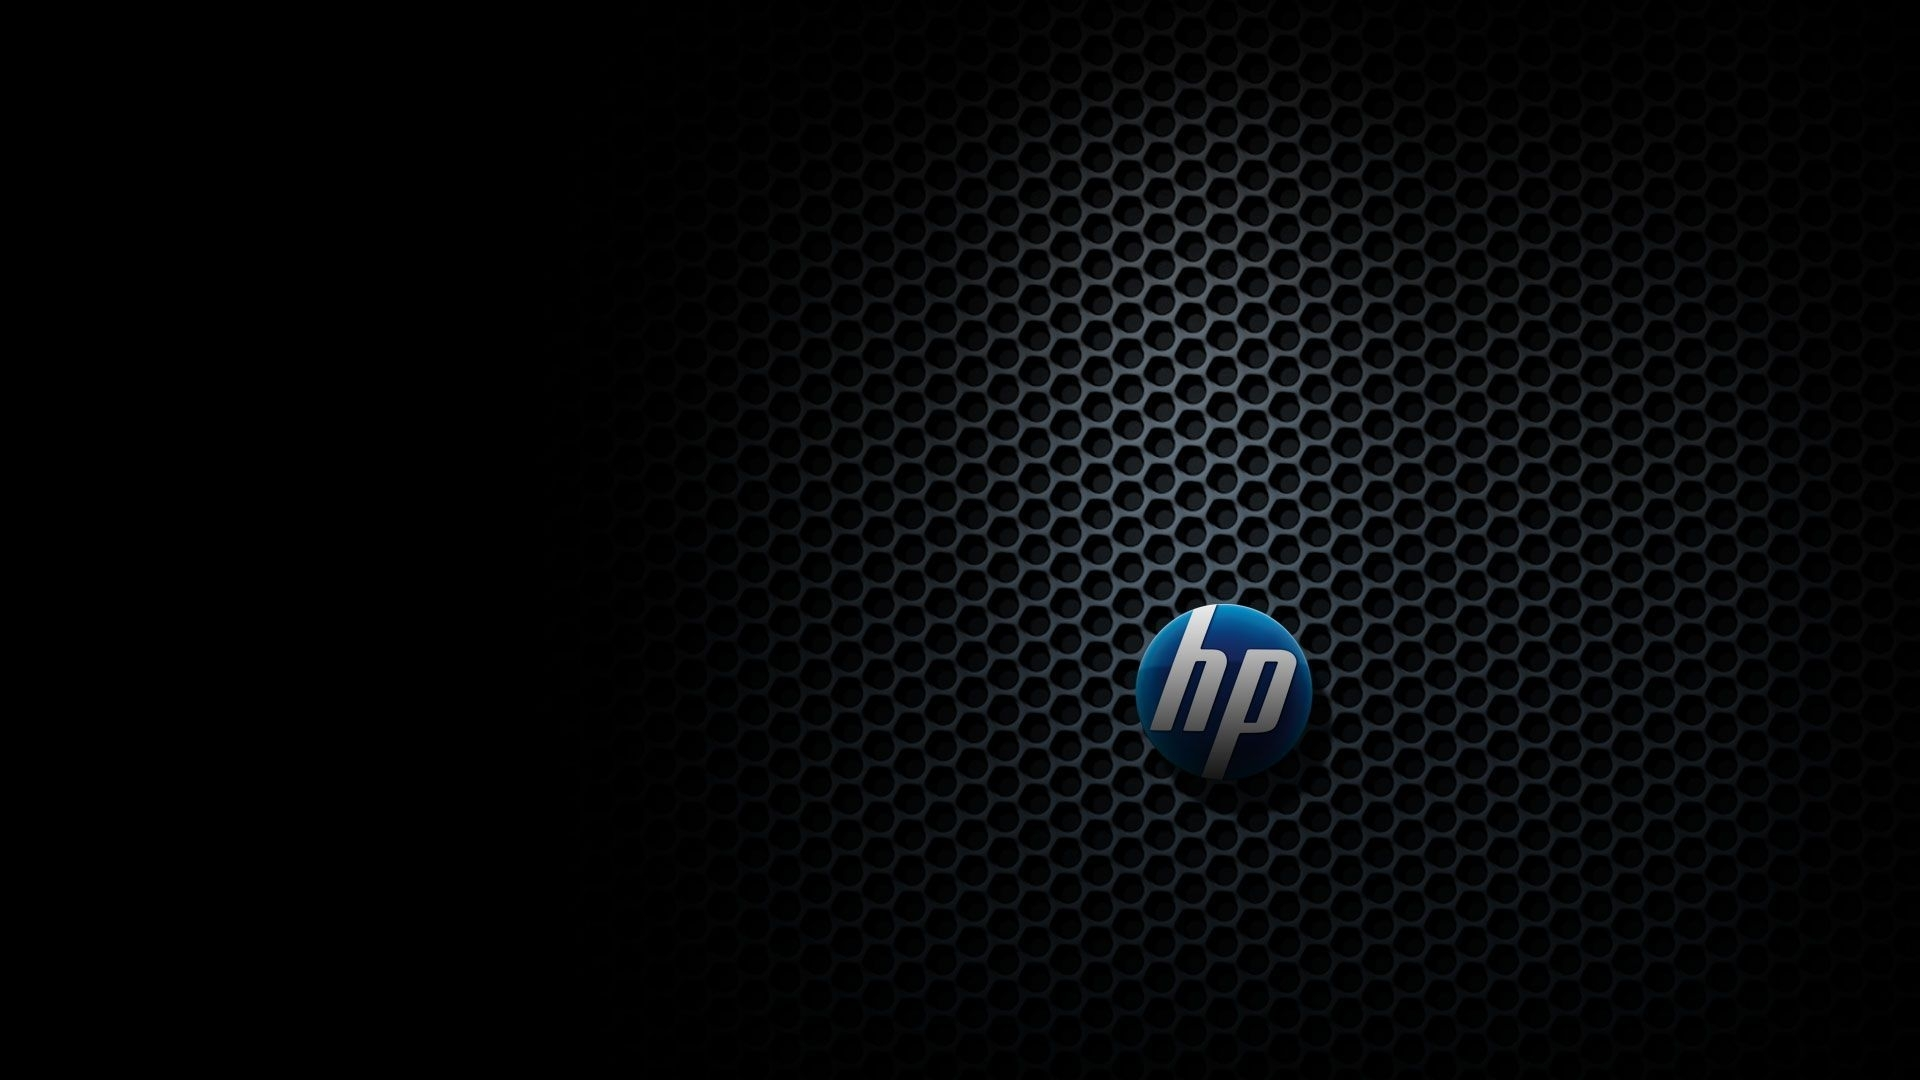 hp elitebook wallpapers group | hd wallpapers | pinterest | hp